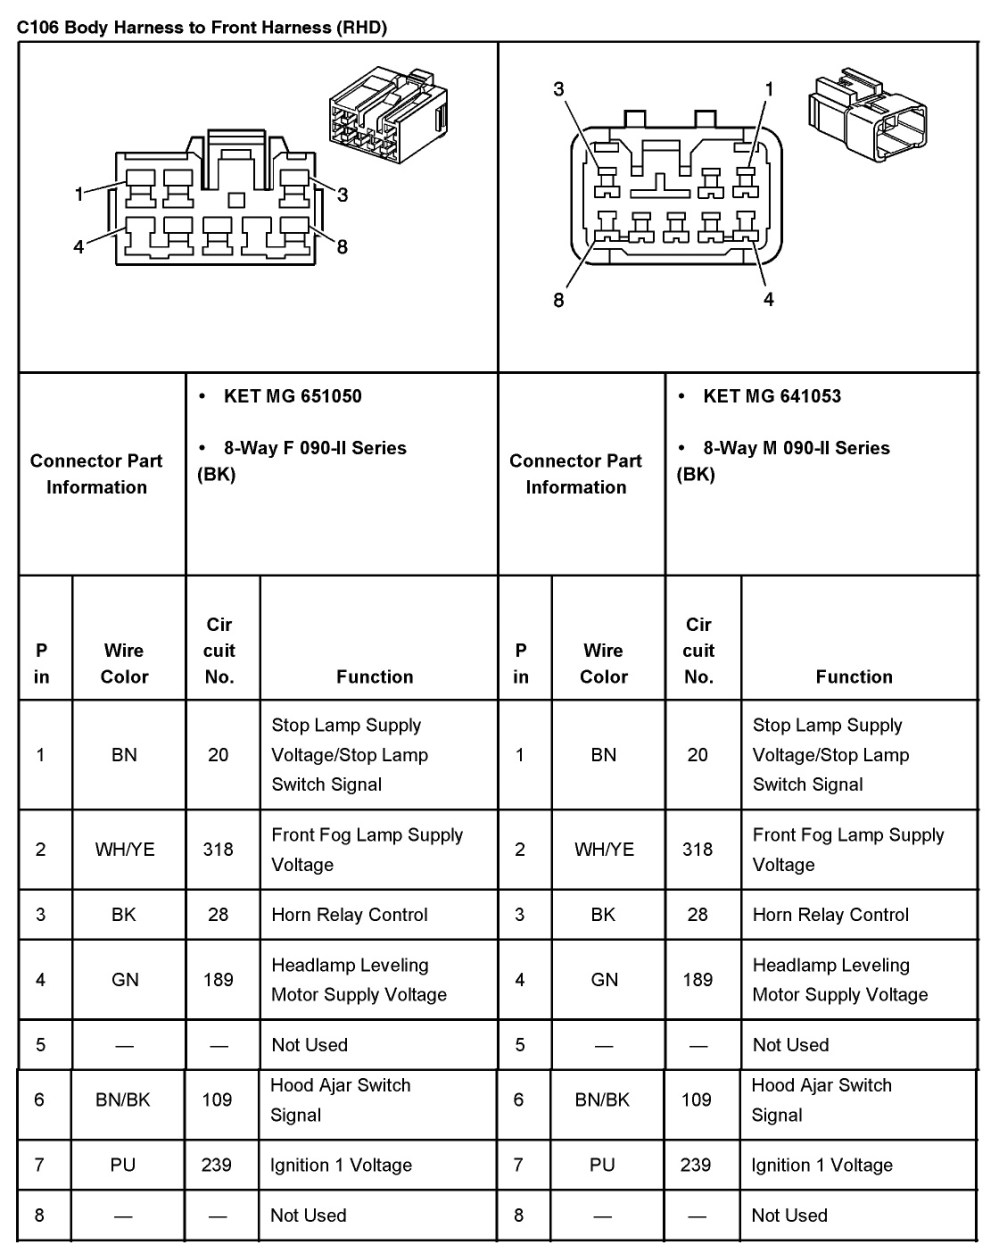 medium resolution of 2005 aveo master connector list and diagrams 2005 chevy aveo ignition wiring diagram 2005 chevy aveo